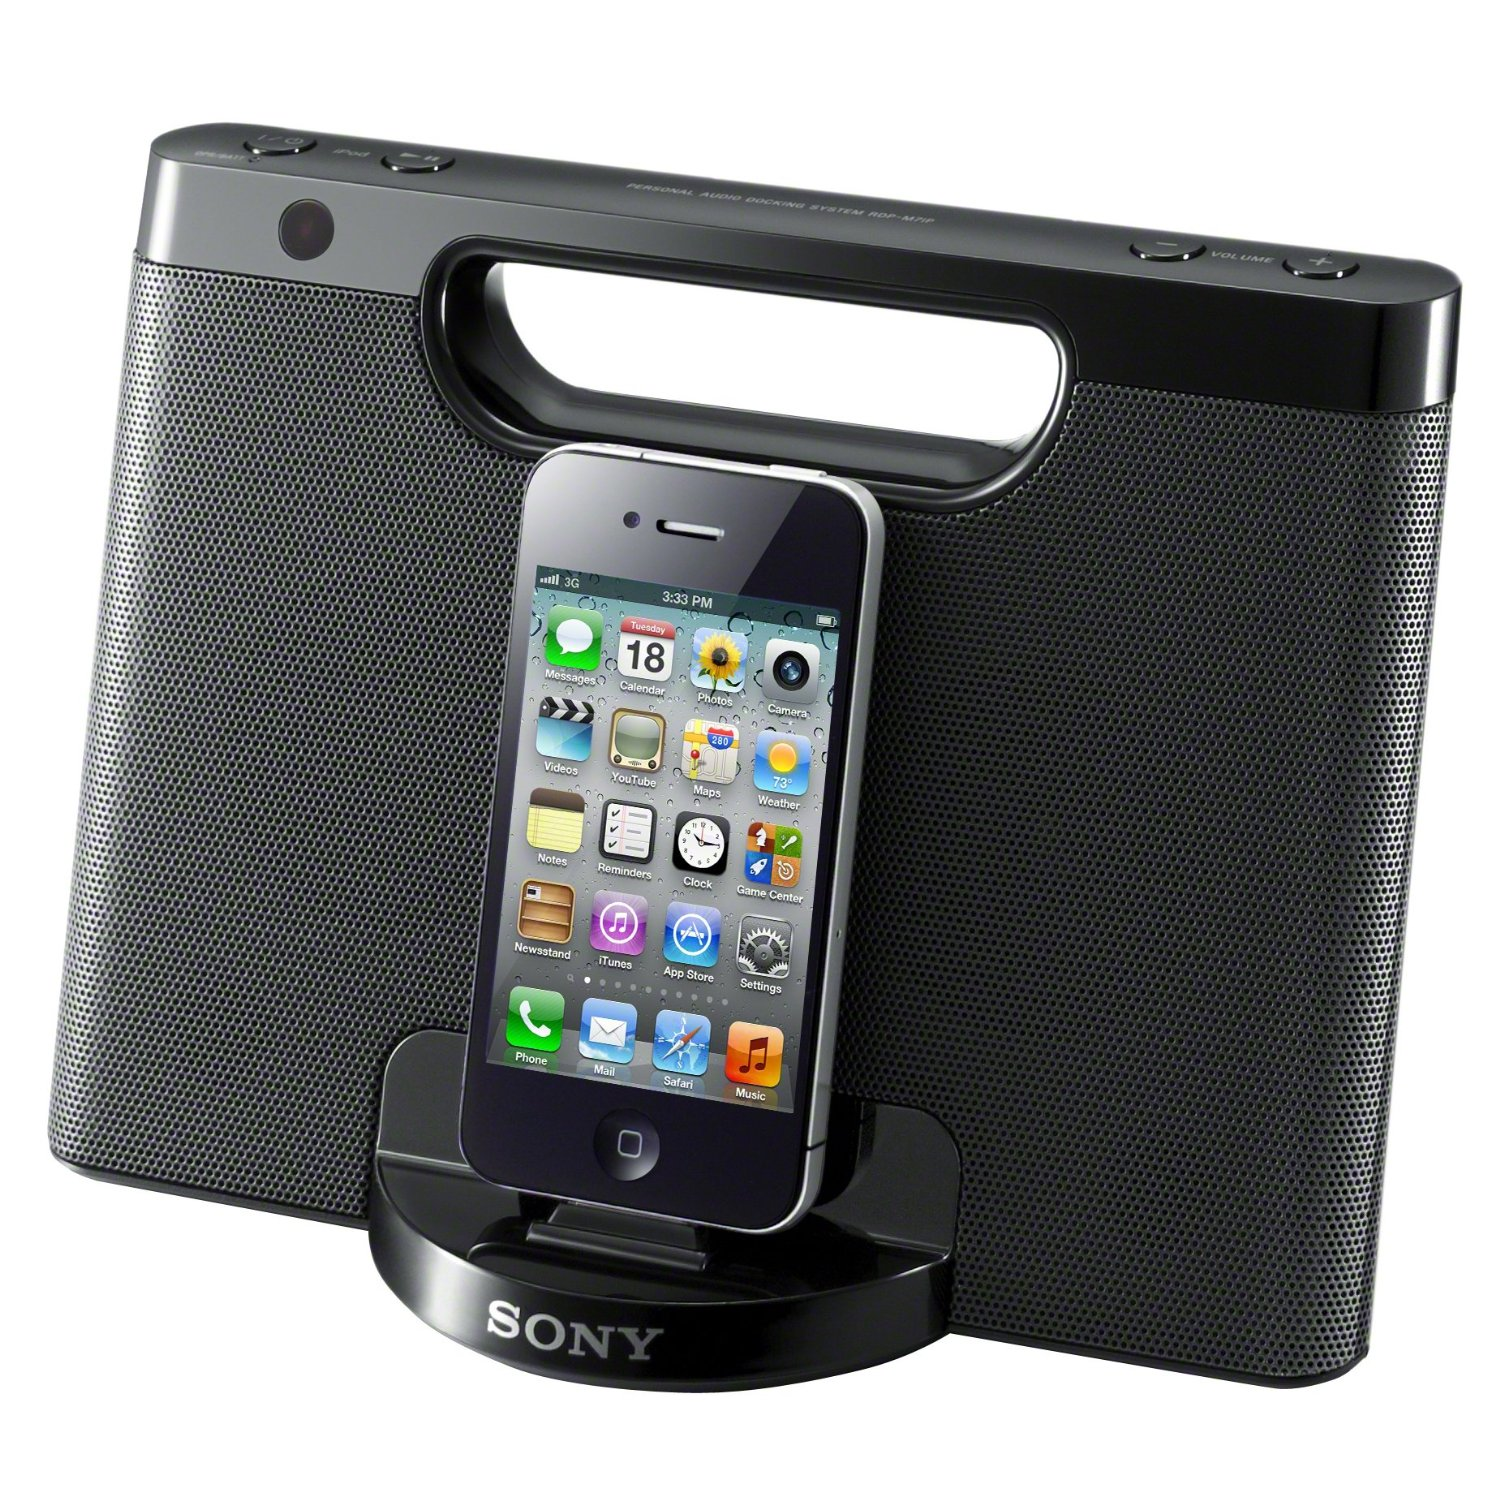 sony rdpm7ip compact speaker audio dock for ipod iphone. Black Bedroom Furniture Sets. Home Design Ideas